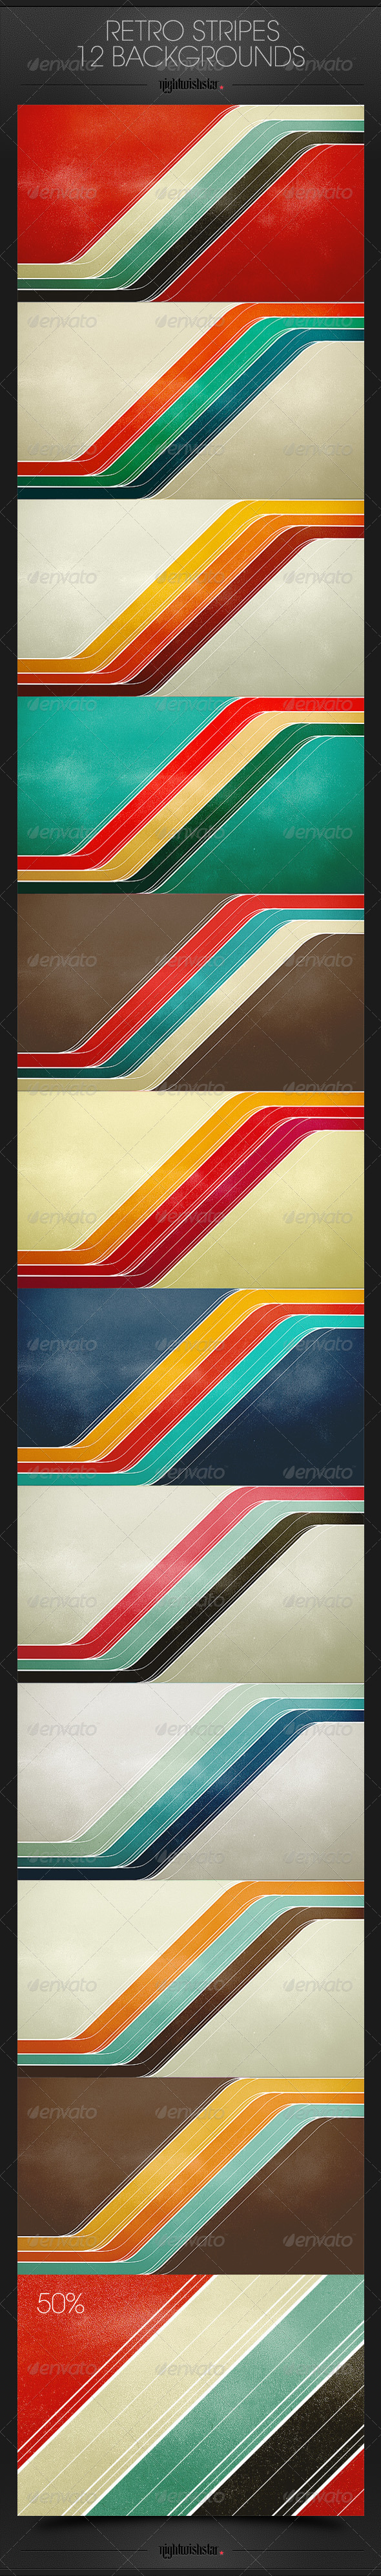 GraphicRiver Retro Stripes Backgrounds 6513394